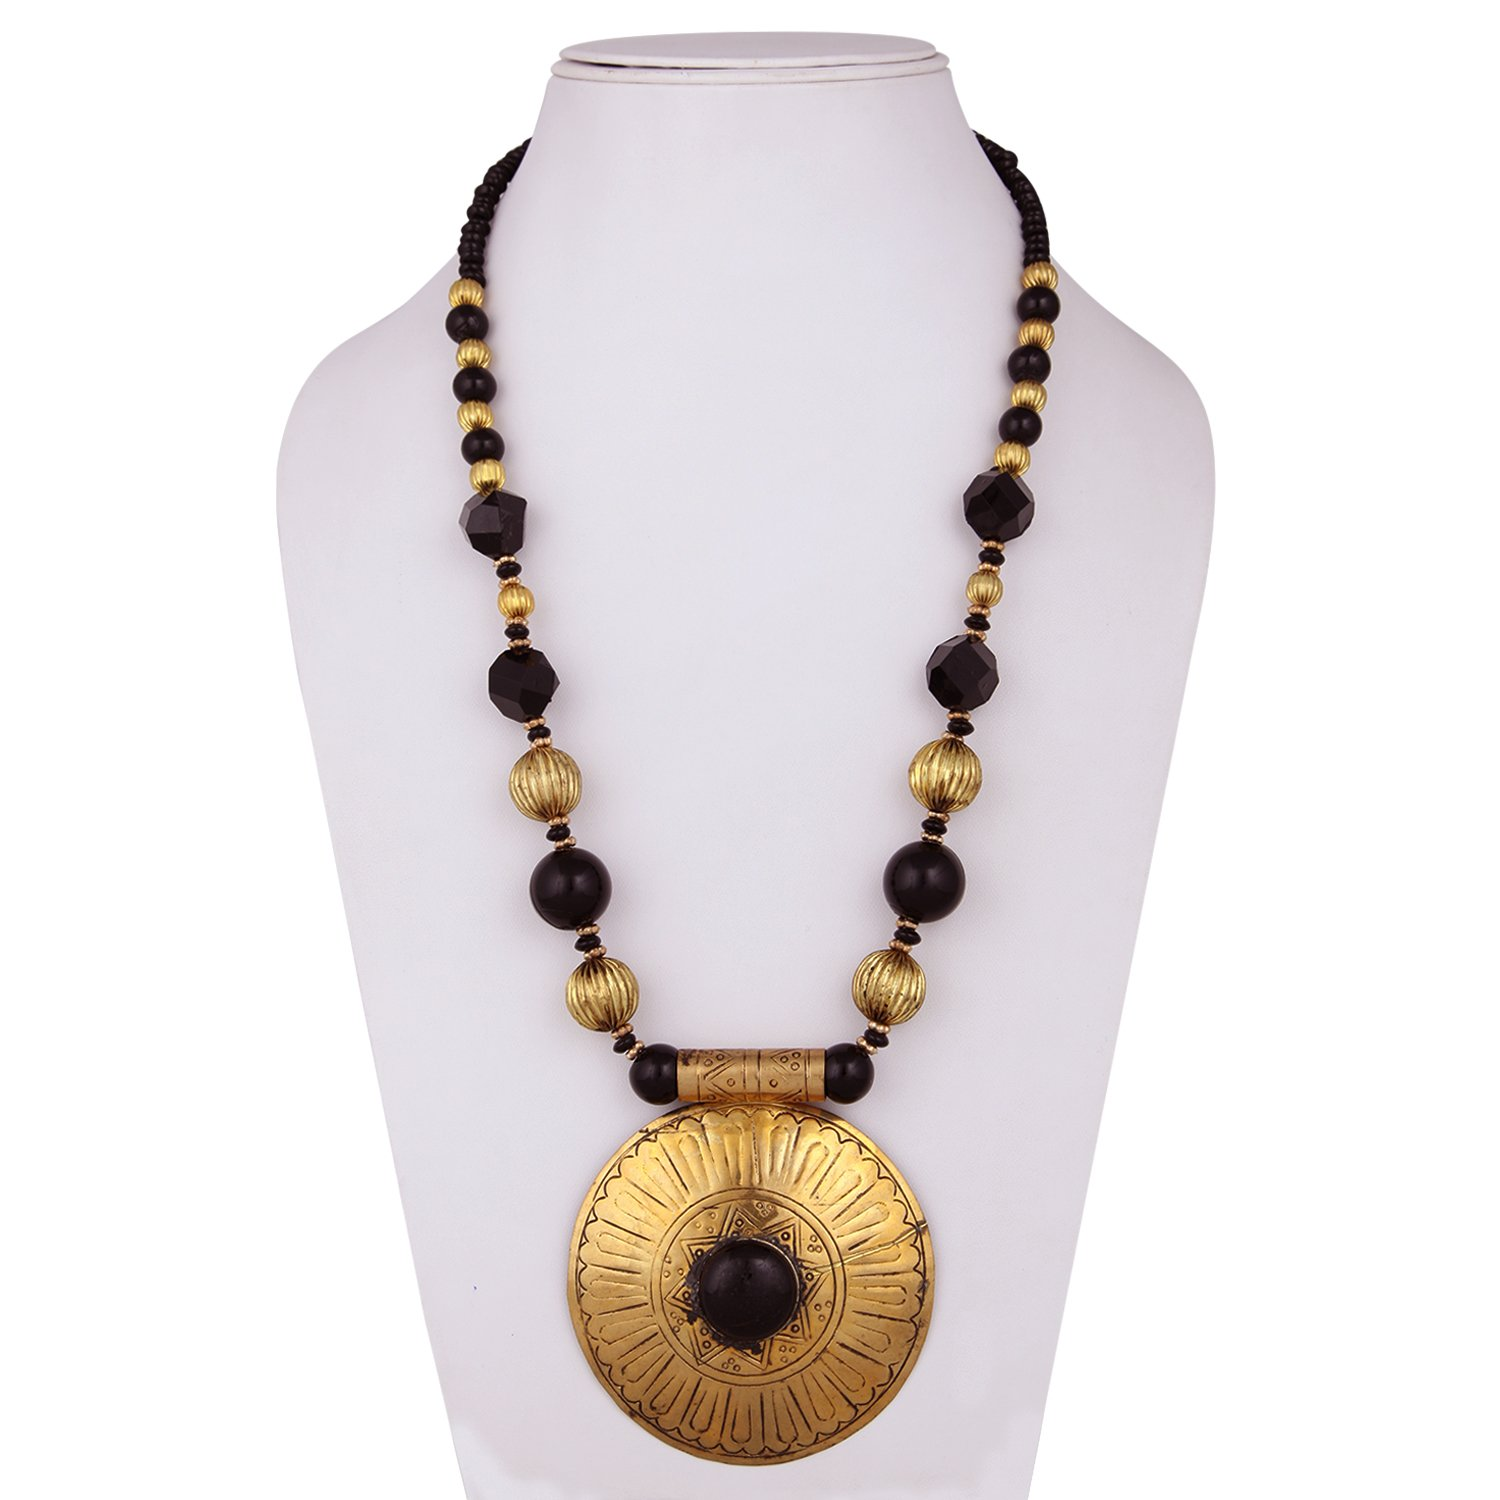 online collections pearl products necklace buy black necklaces brass set zinnga color